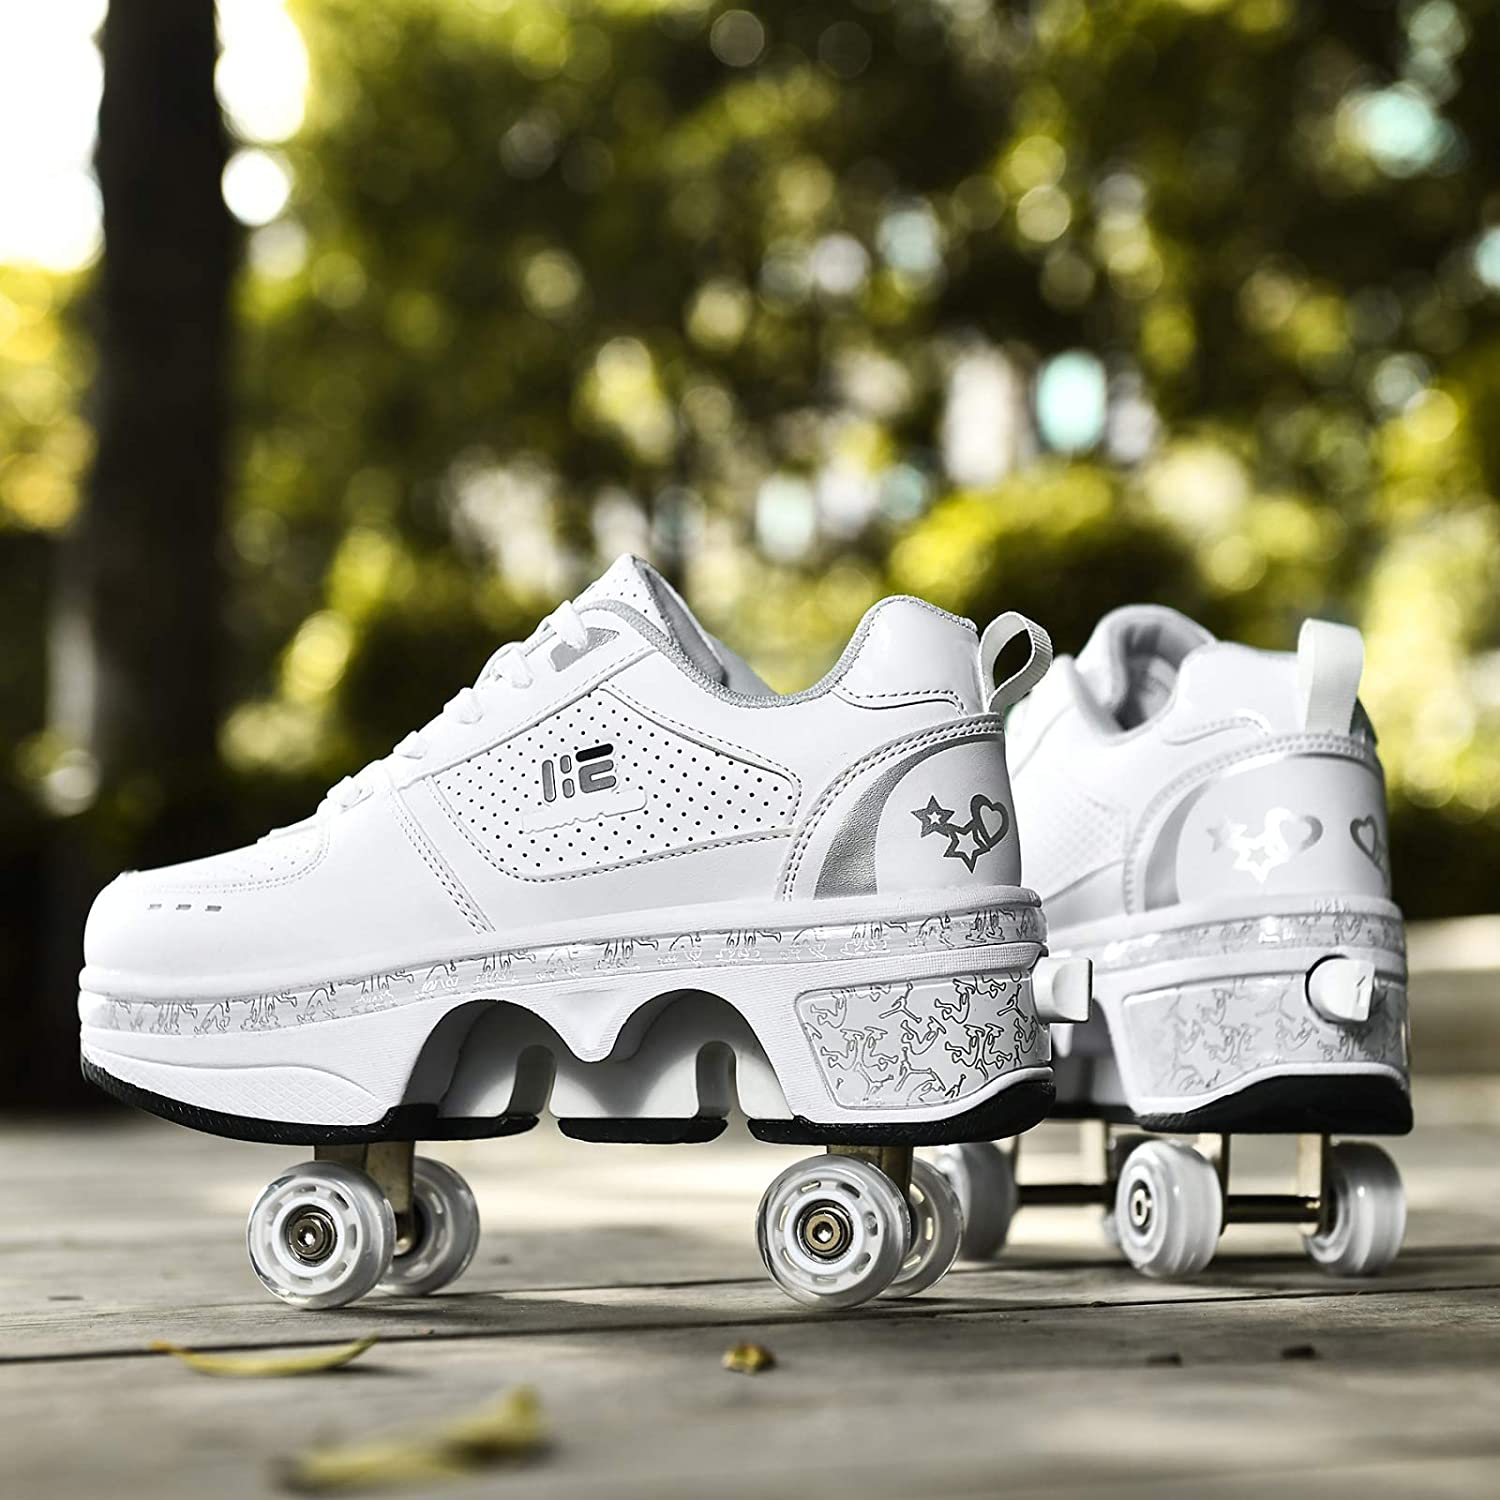 Kick Roller Shoes Skate Outdoor Running Shoes With Wheel For Adults Kids,EU33 Walk Deformation Shoes